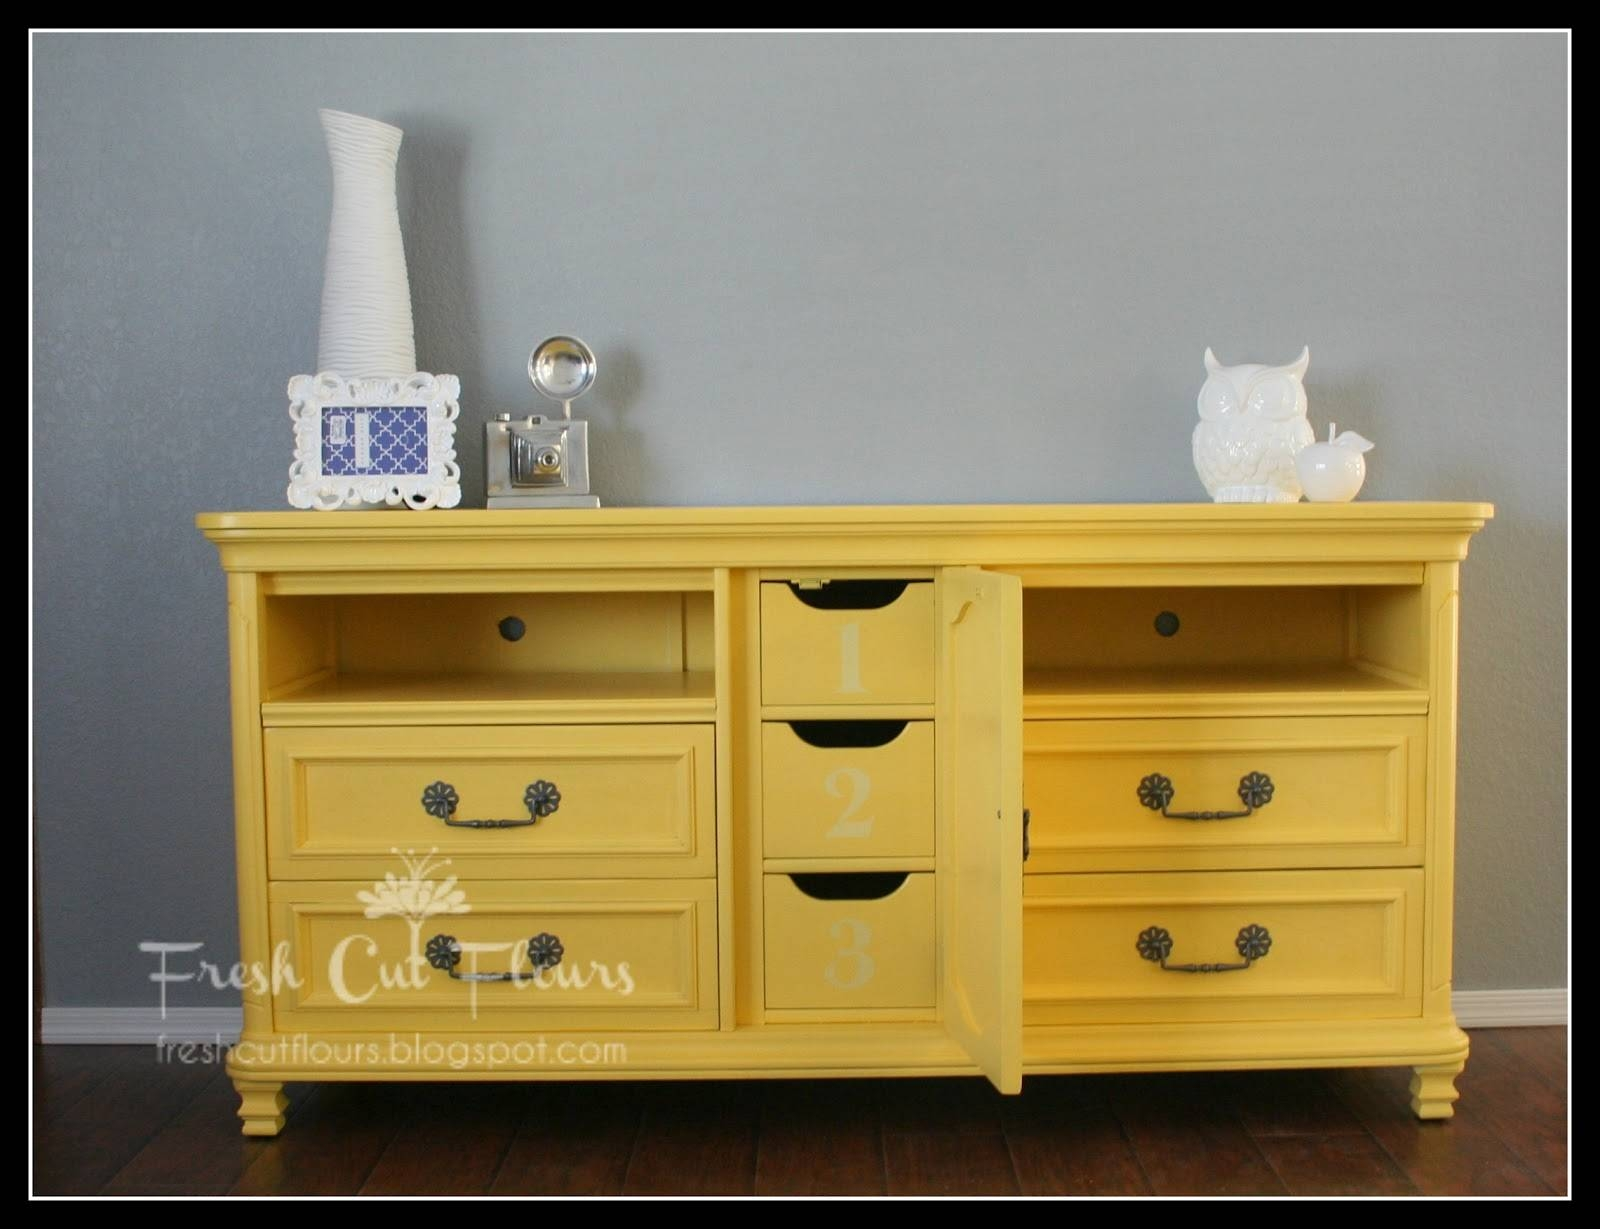 Fresh Cut Flours: Dresser Turned Tv/media Stand pertaining to Yellow Tv Stands (Image 3 of 15)